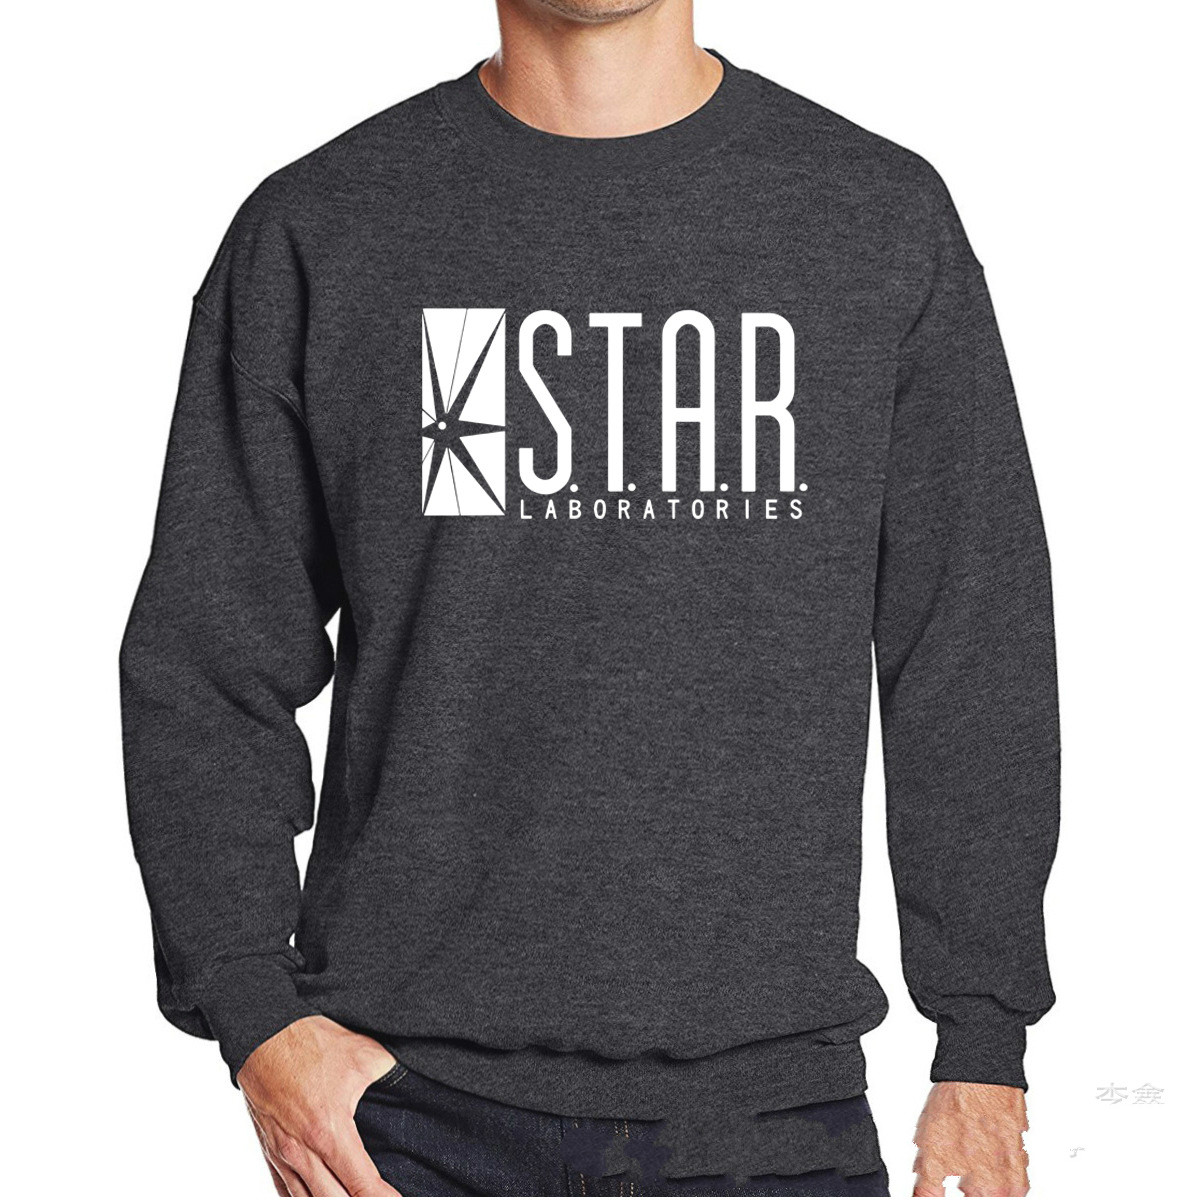 STAR LABORATORIES HOODIE THE FLASH S.T.A.R Labs Sizes 3-4years to XXL